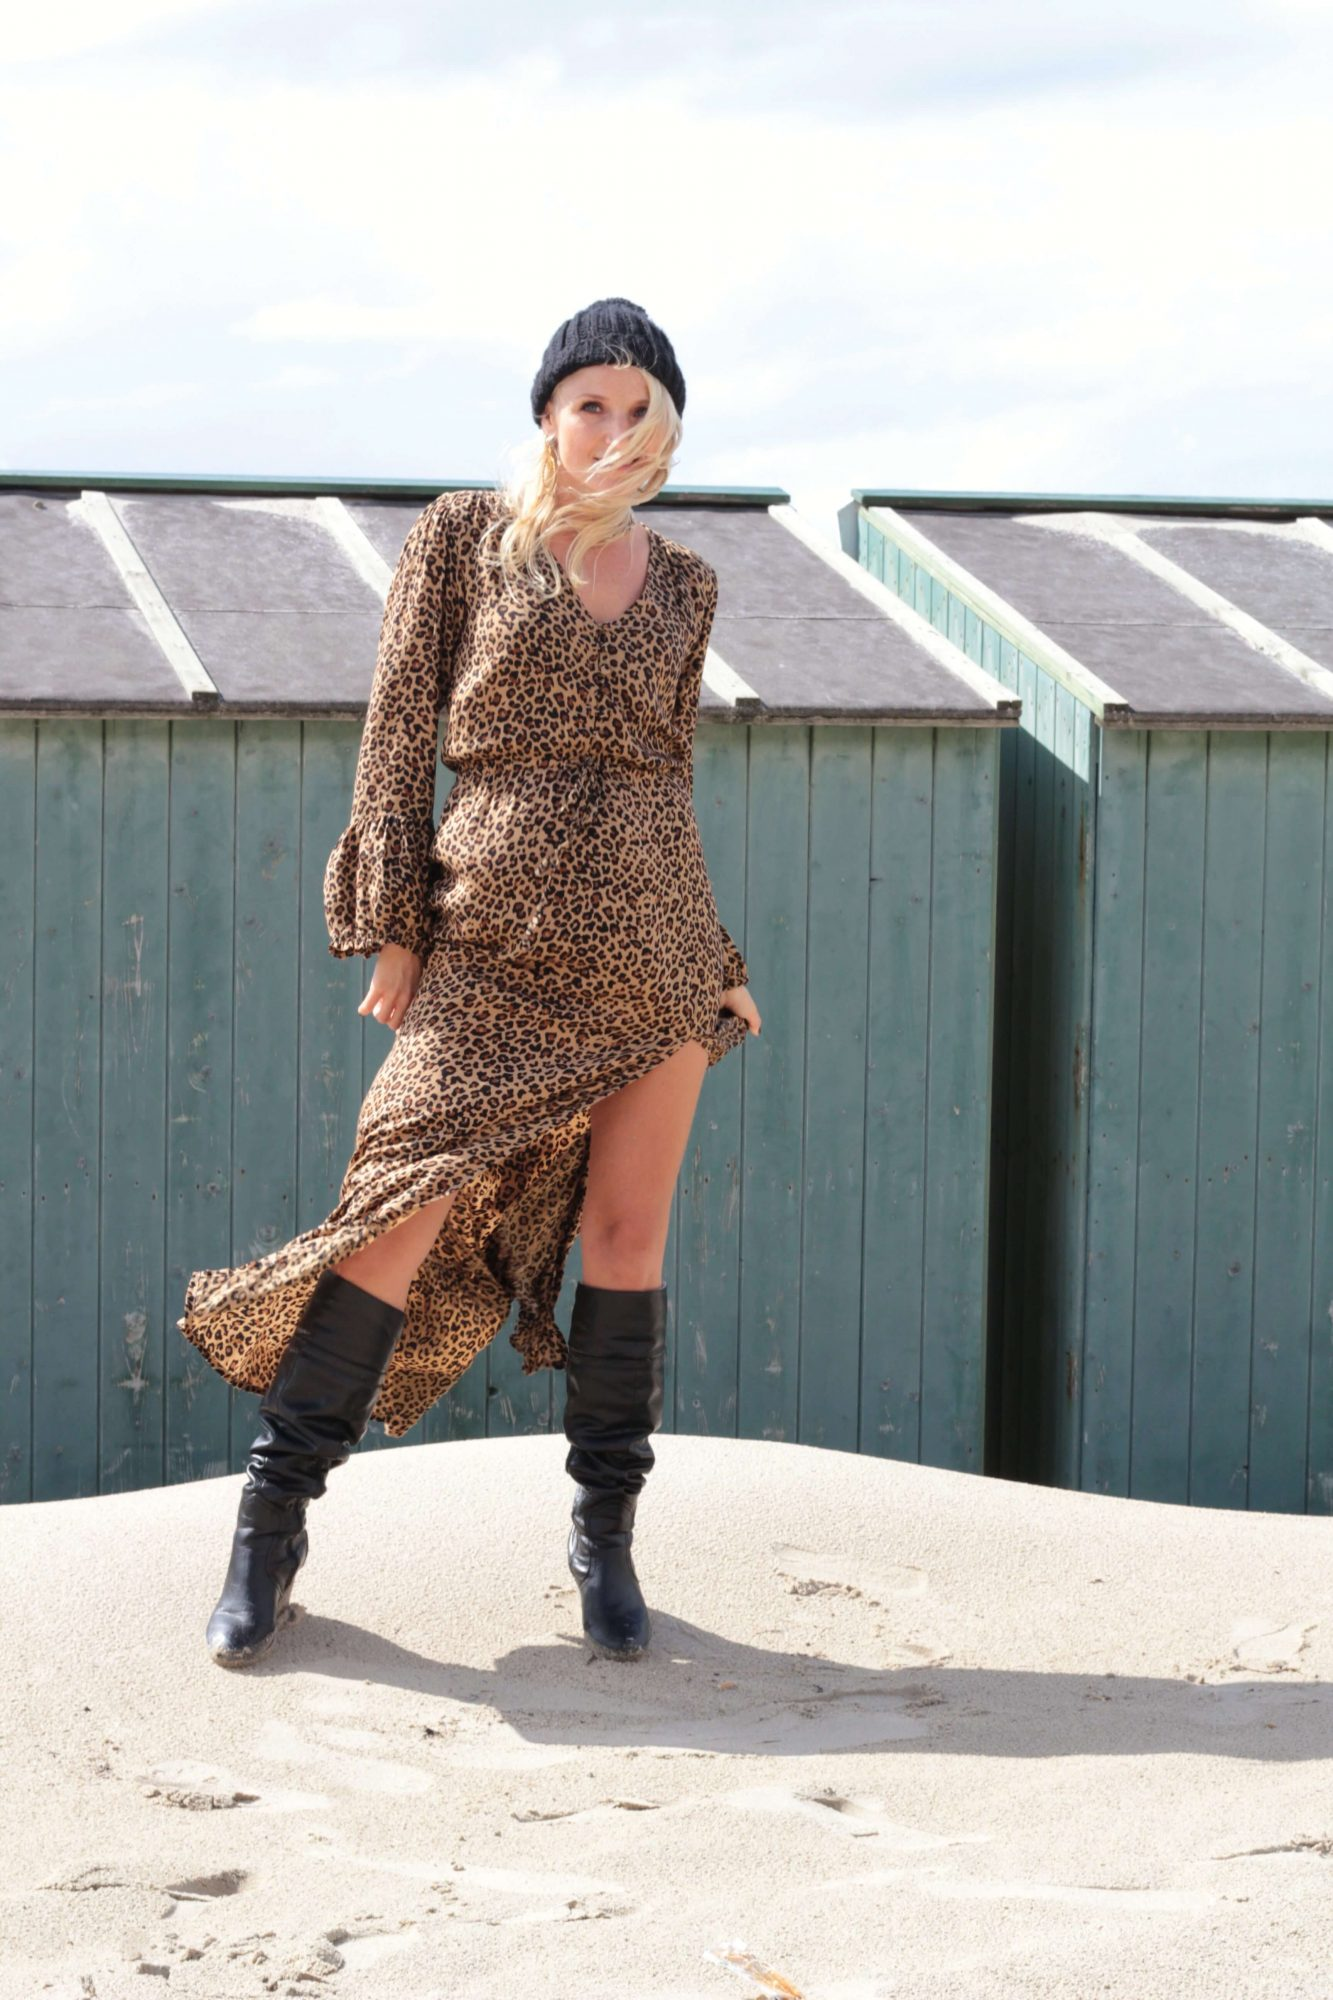 Animal Print Leo Muster Boho Chic Kleid Bohemian Gypsy Maxikleid